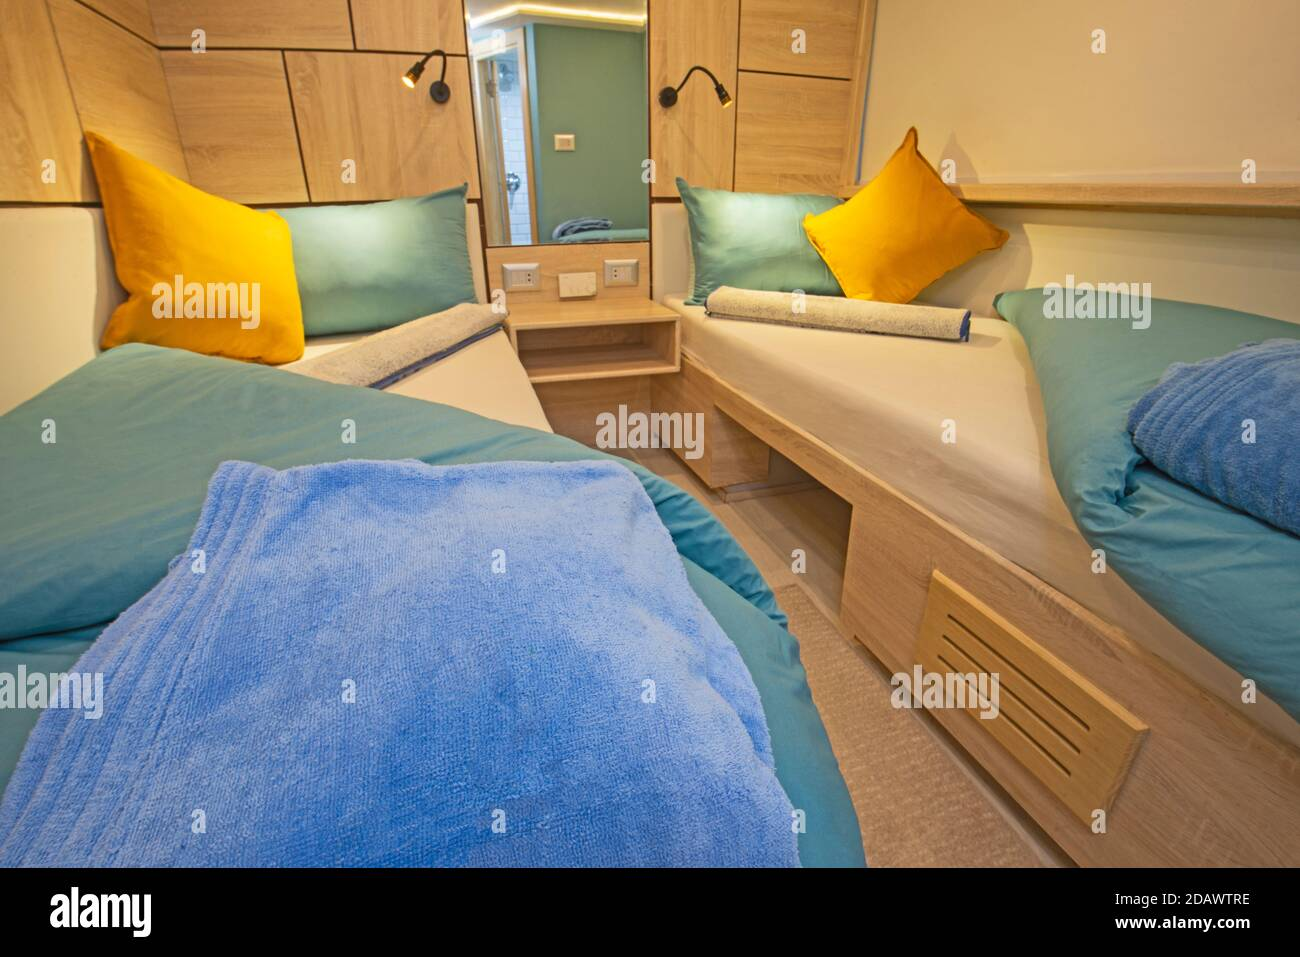 Interior Of Cabin Bedroom On Luxury Sailing Yacht With Twin Beds Stock Photo Alamy